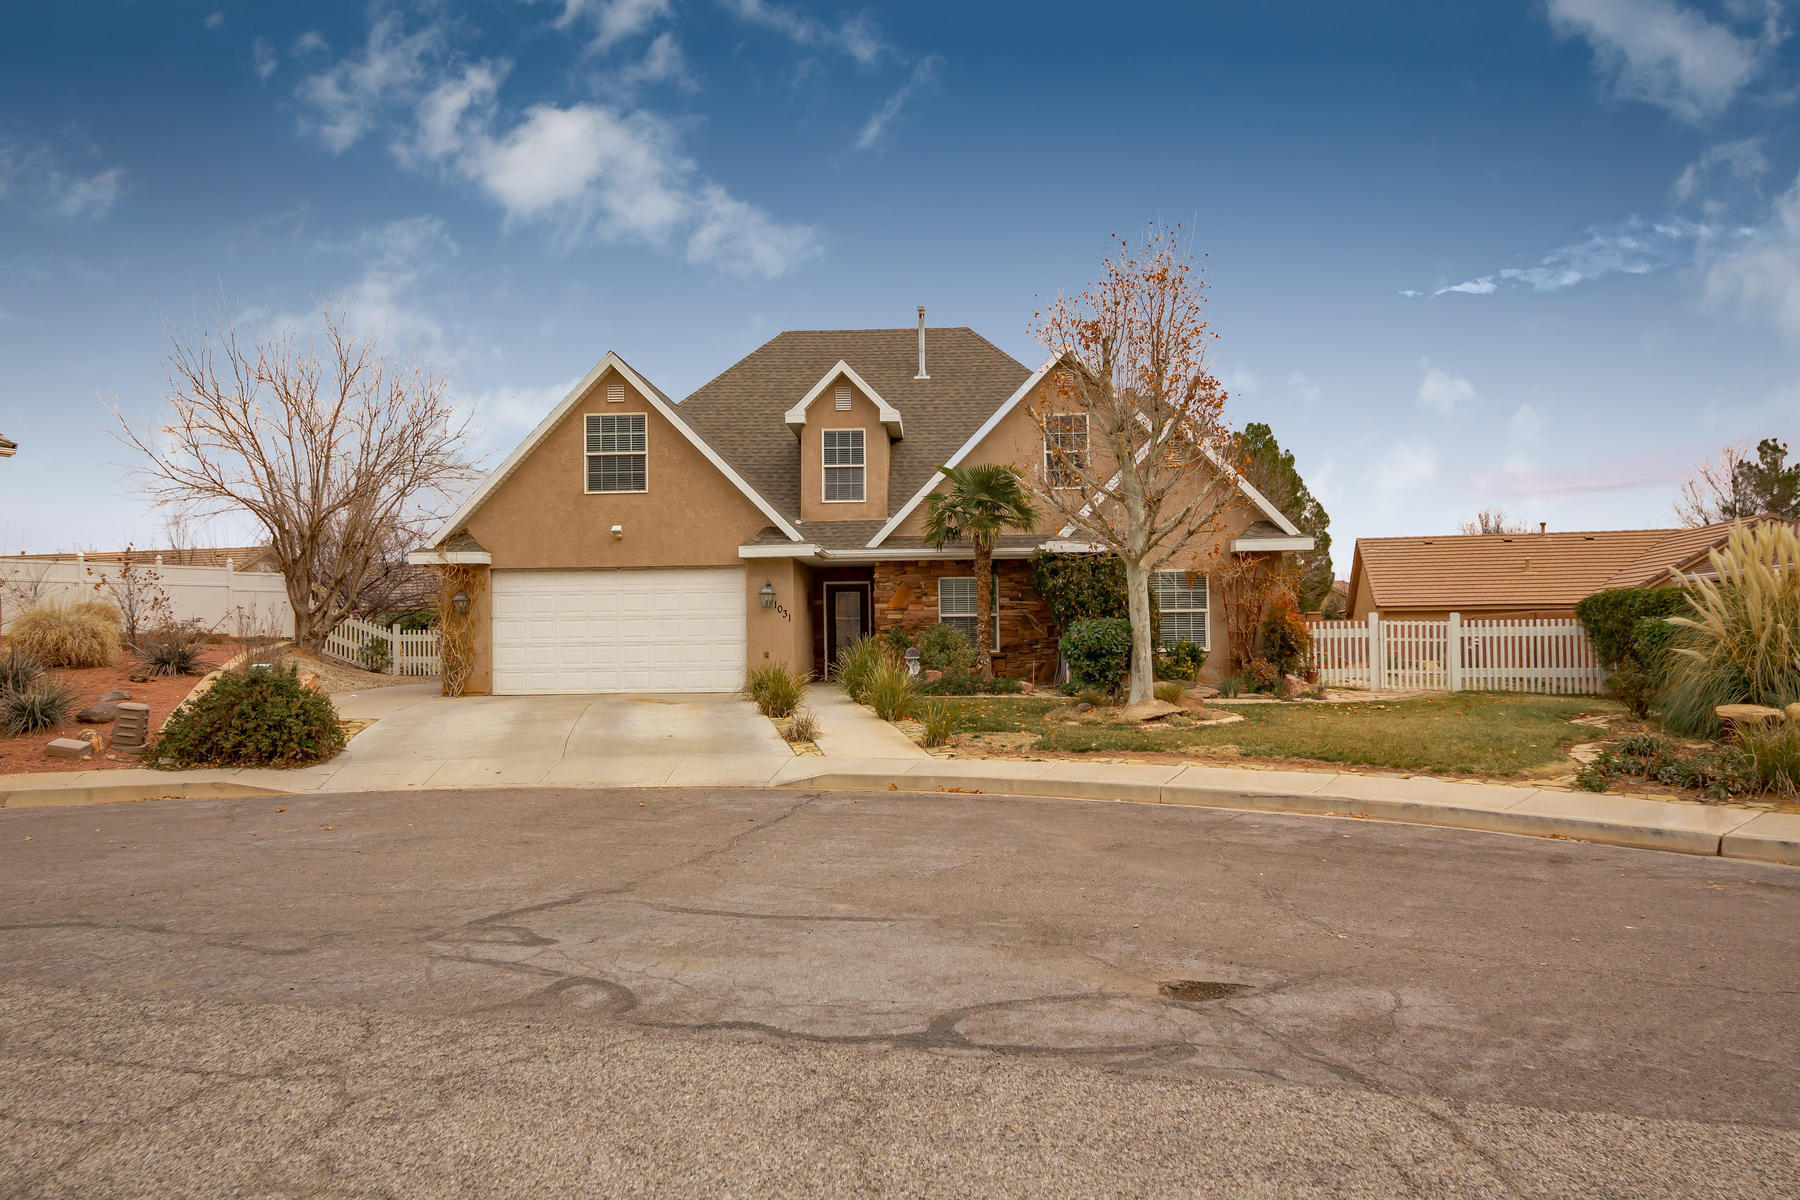 1031 S 500 E Cir, St George Ut 84790